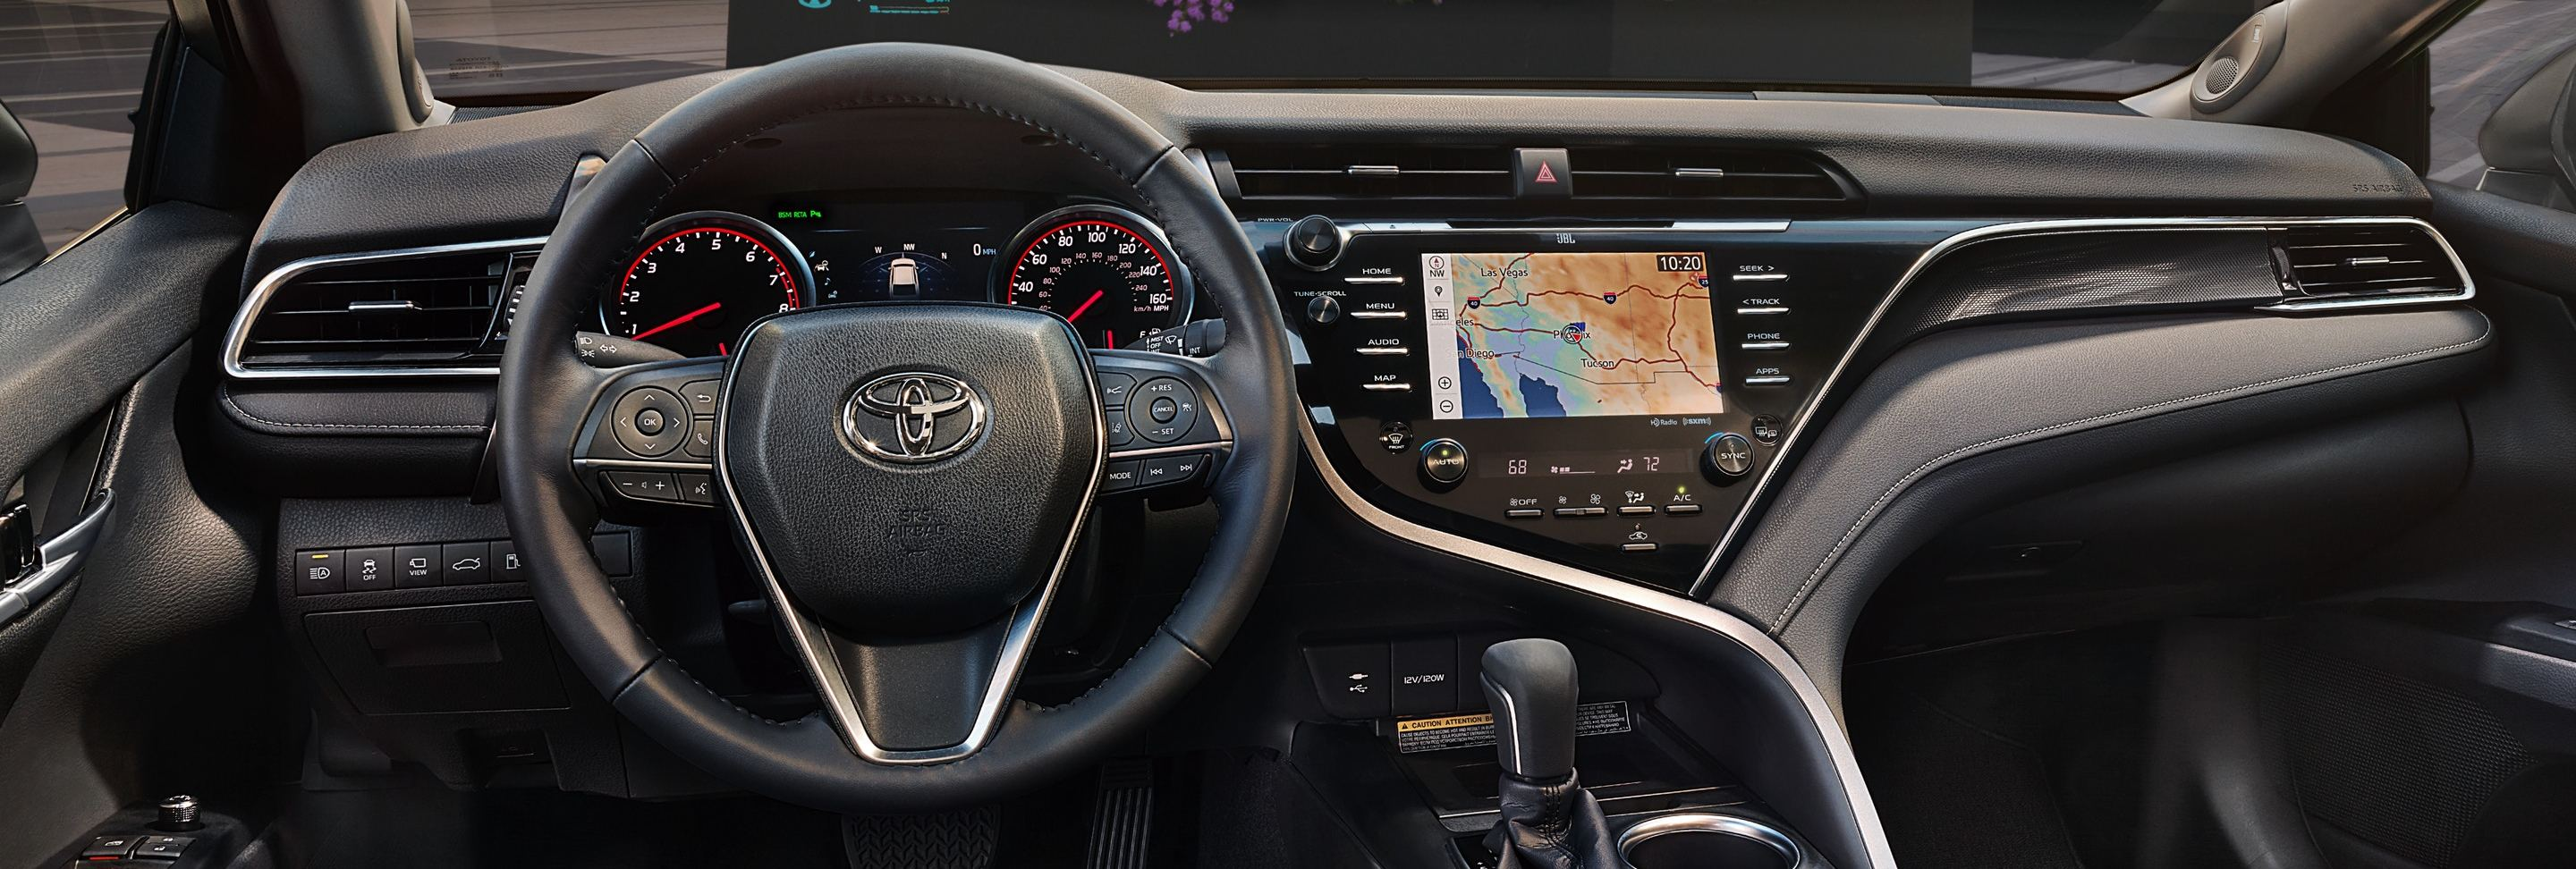 Secure Cabin of the 2020 Camry